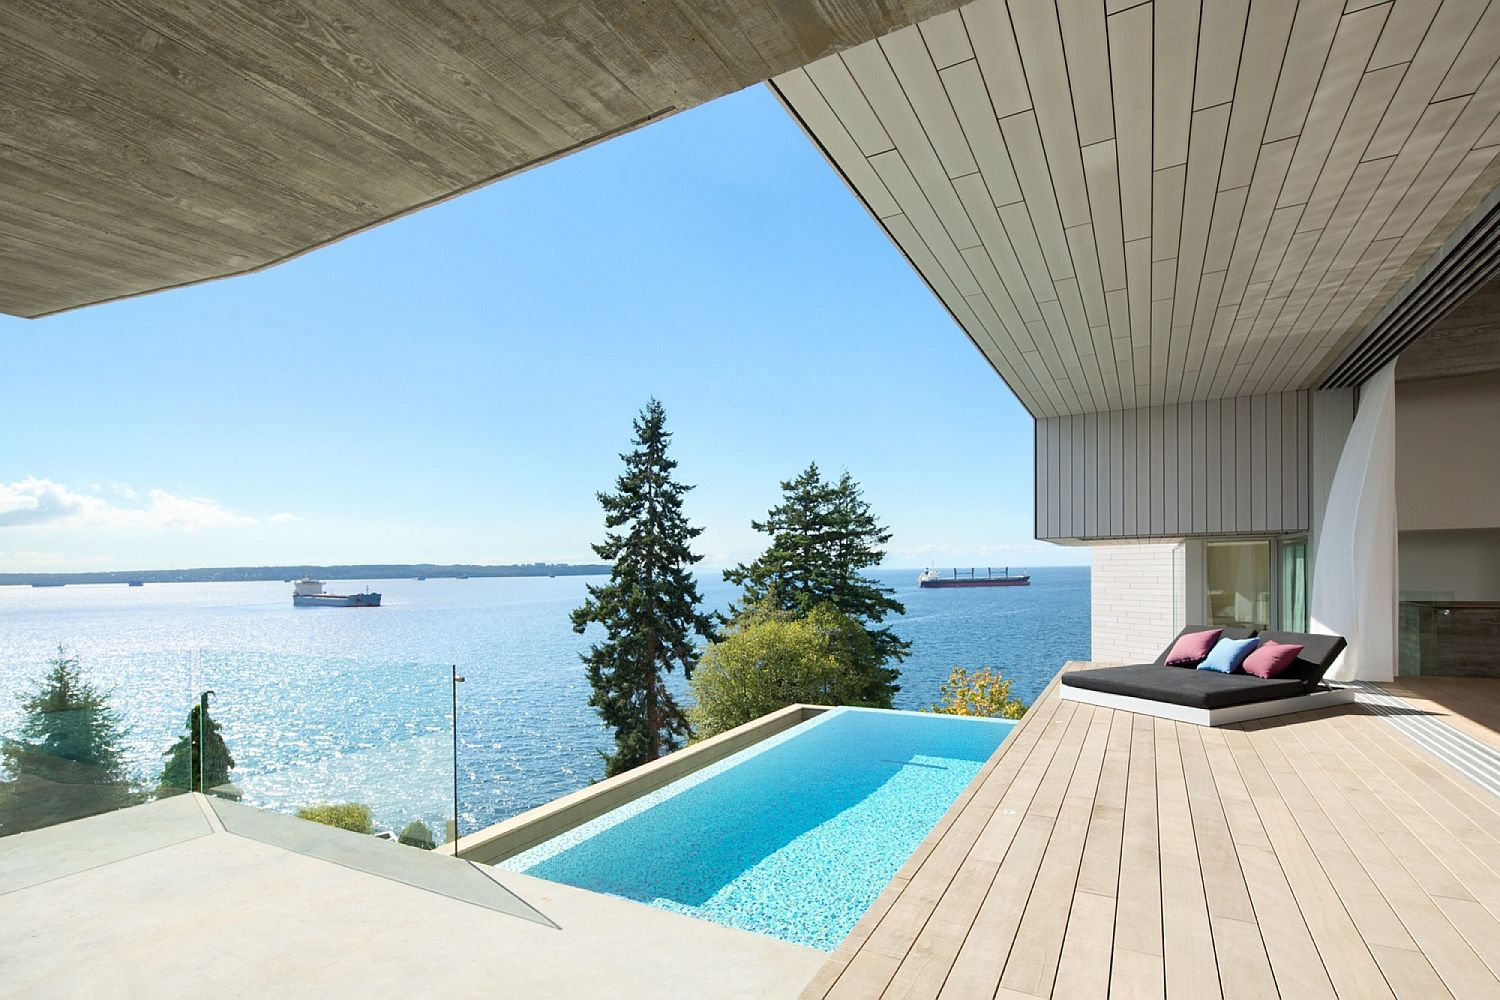 Fabulous ocean views from the suspended deck and plunge pool at the Vancouver home